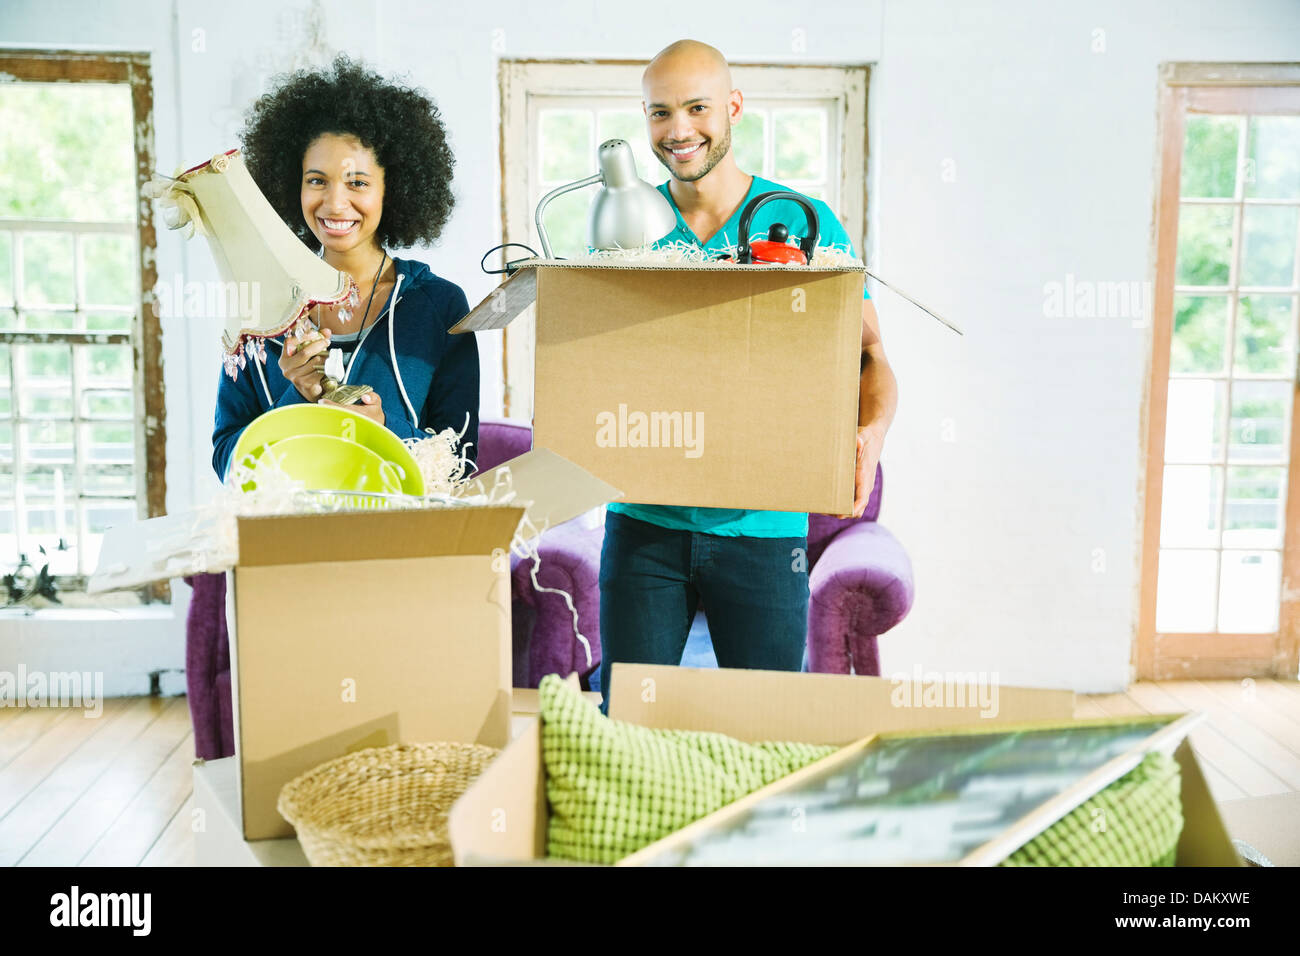 Couple unpacking boxes in new home Stock Photo